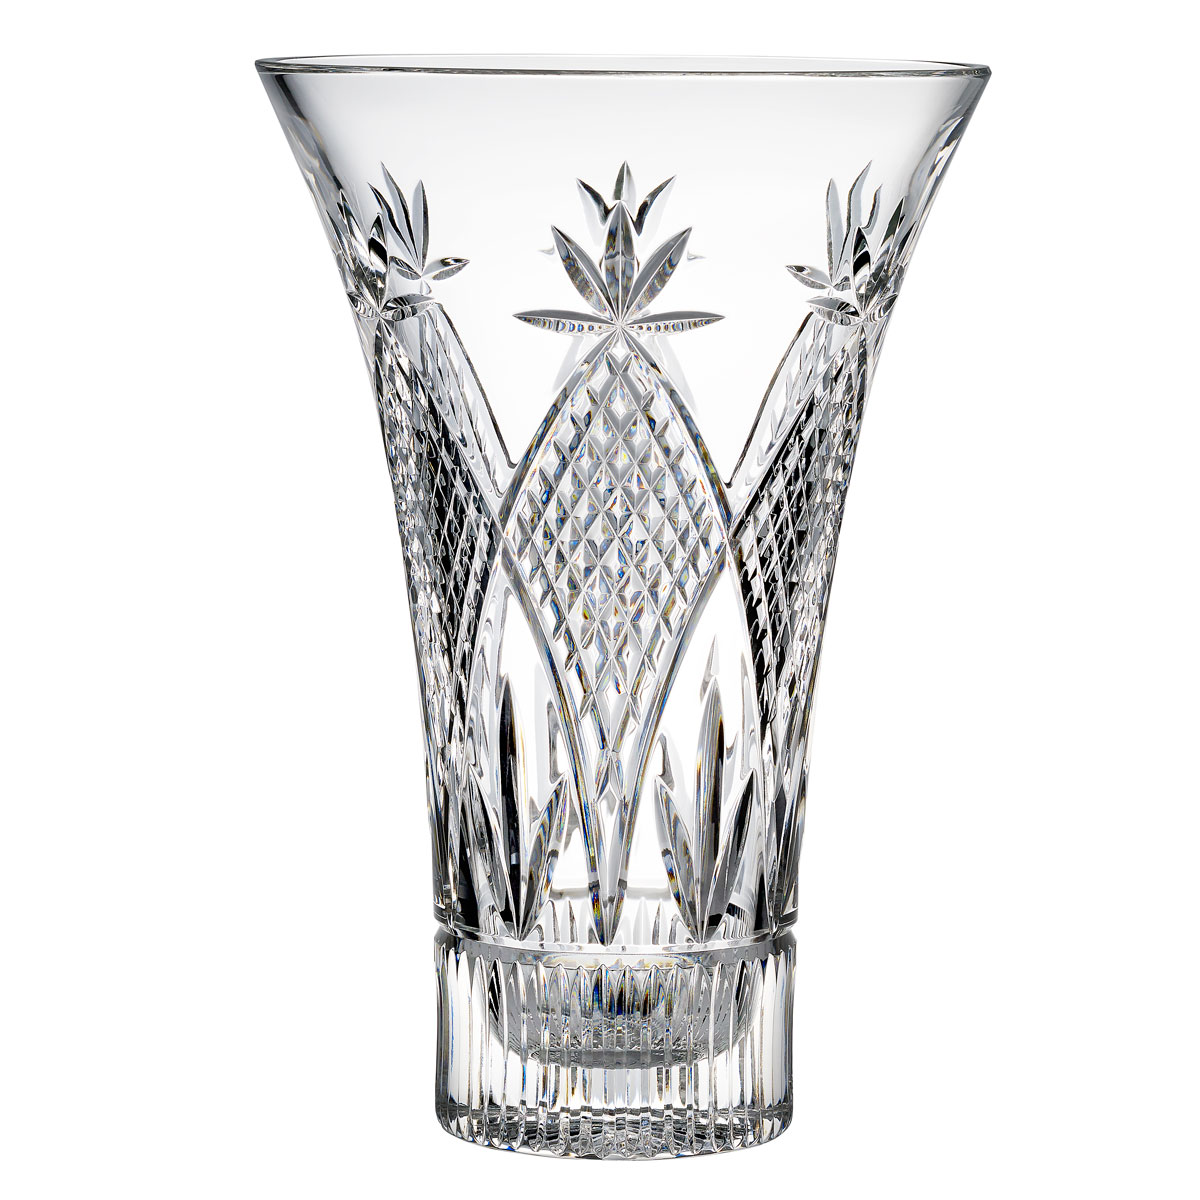 "Waterford Crystal, Powerscourt Statement 14"" Vase by Tom Power, Limited Edition"